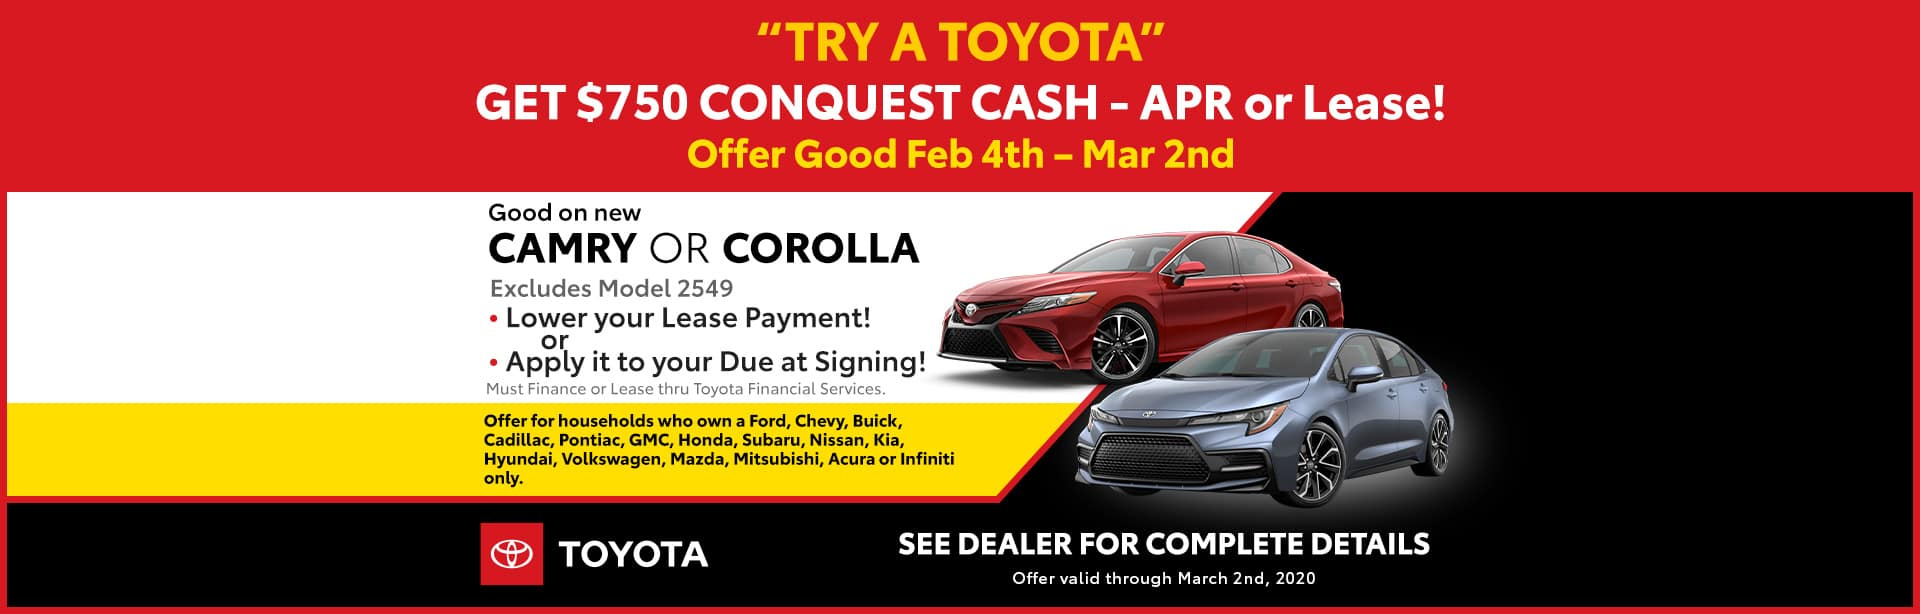 Try a Toyota